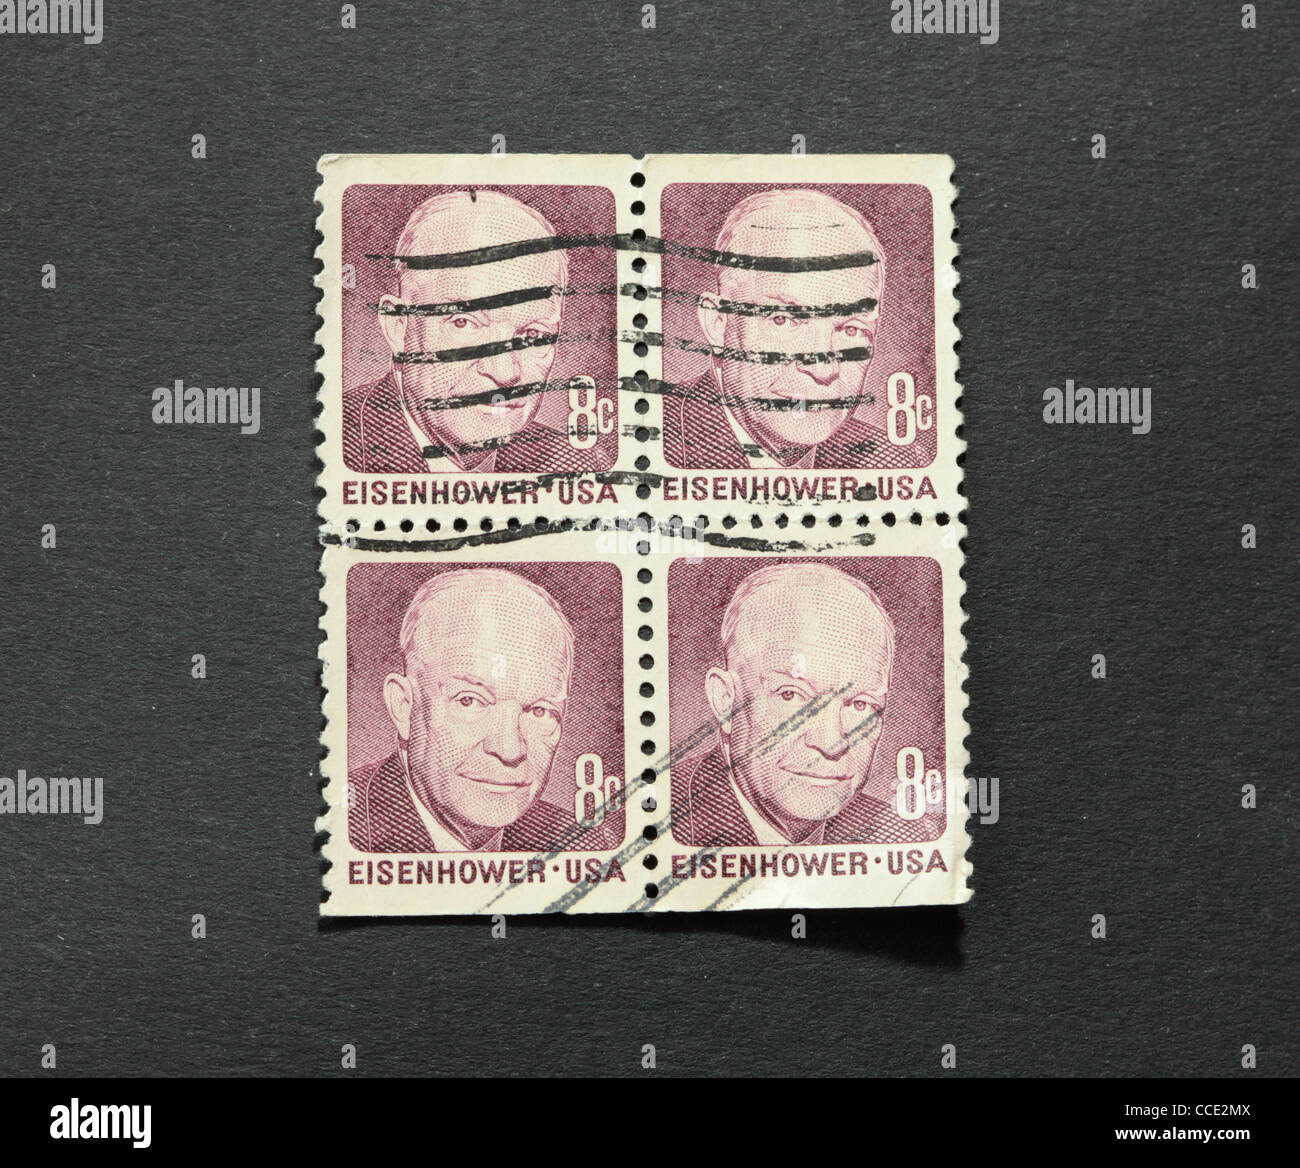 President Eisenhower on vintage american postage stamps Stock Photo